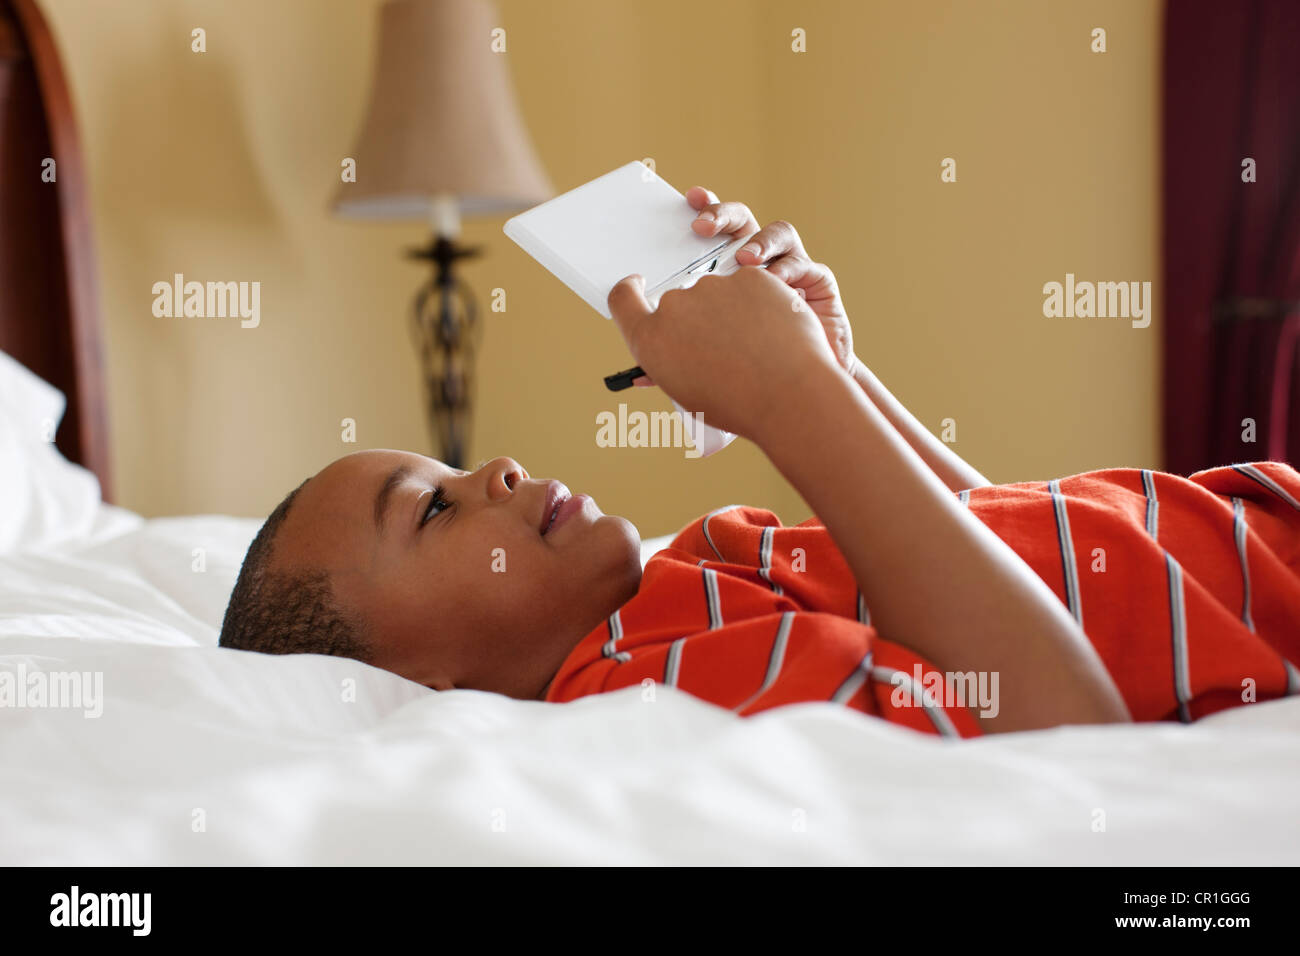 Boy playing handheld video game on bed Stock Photo